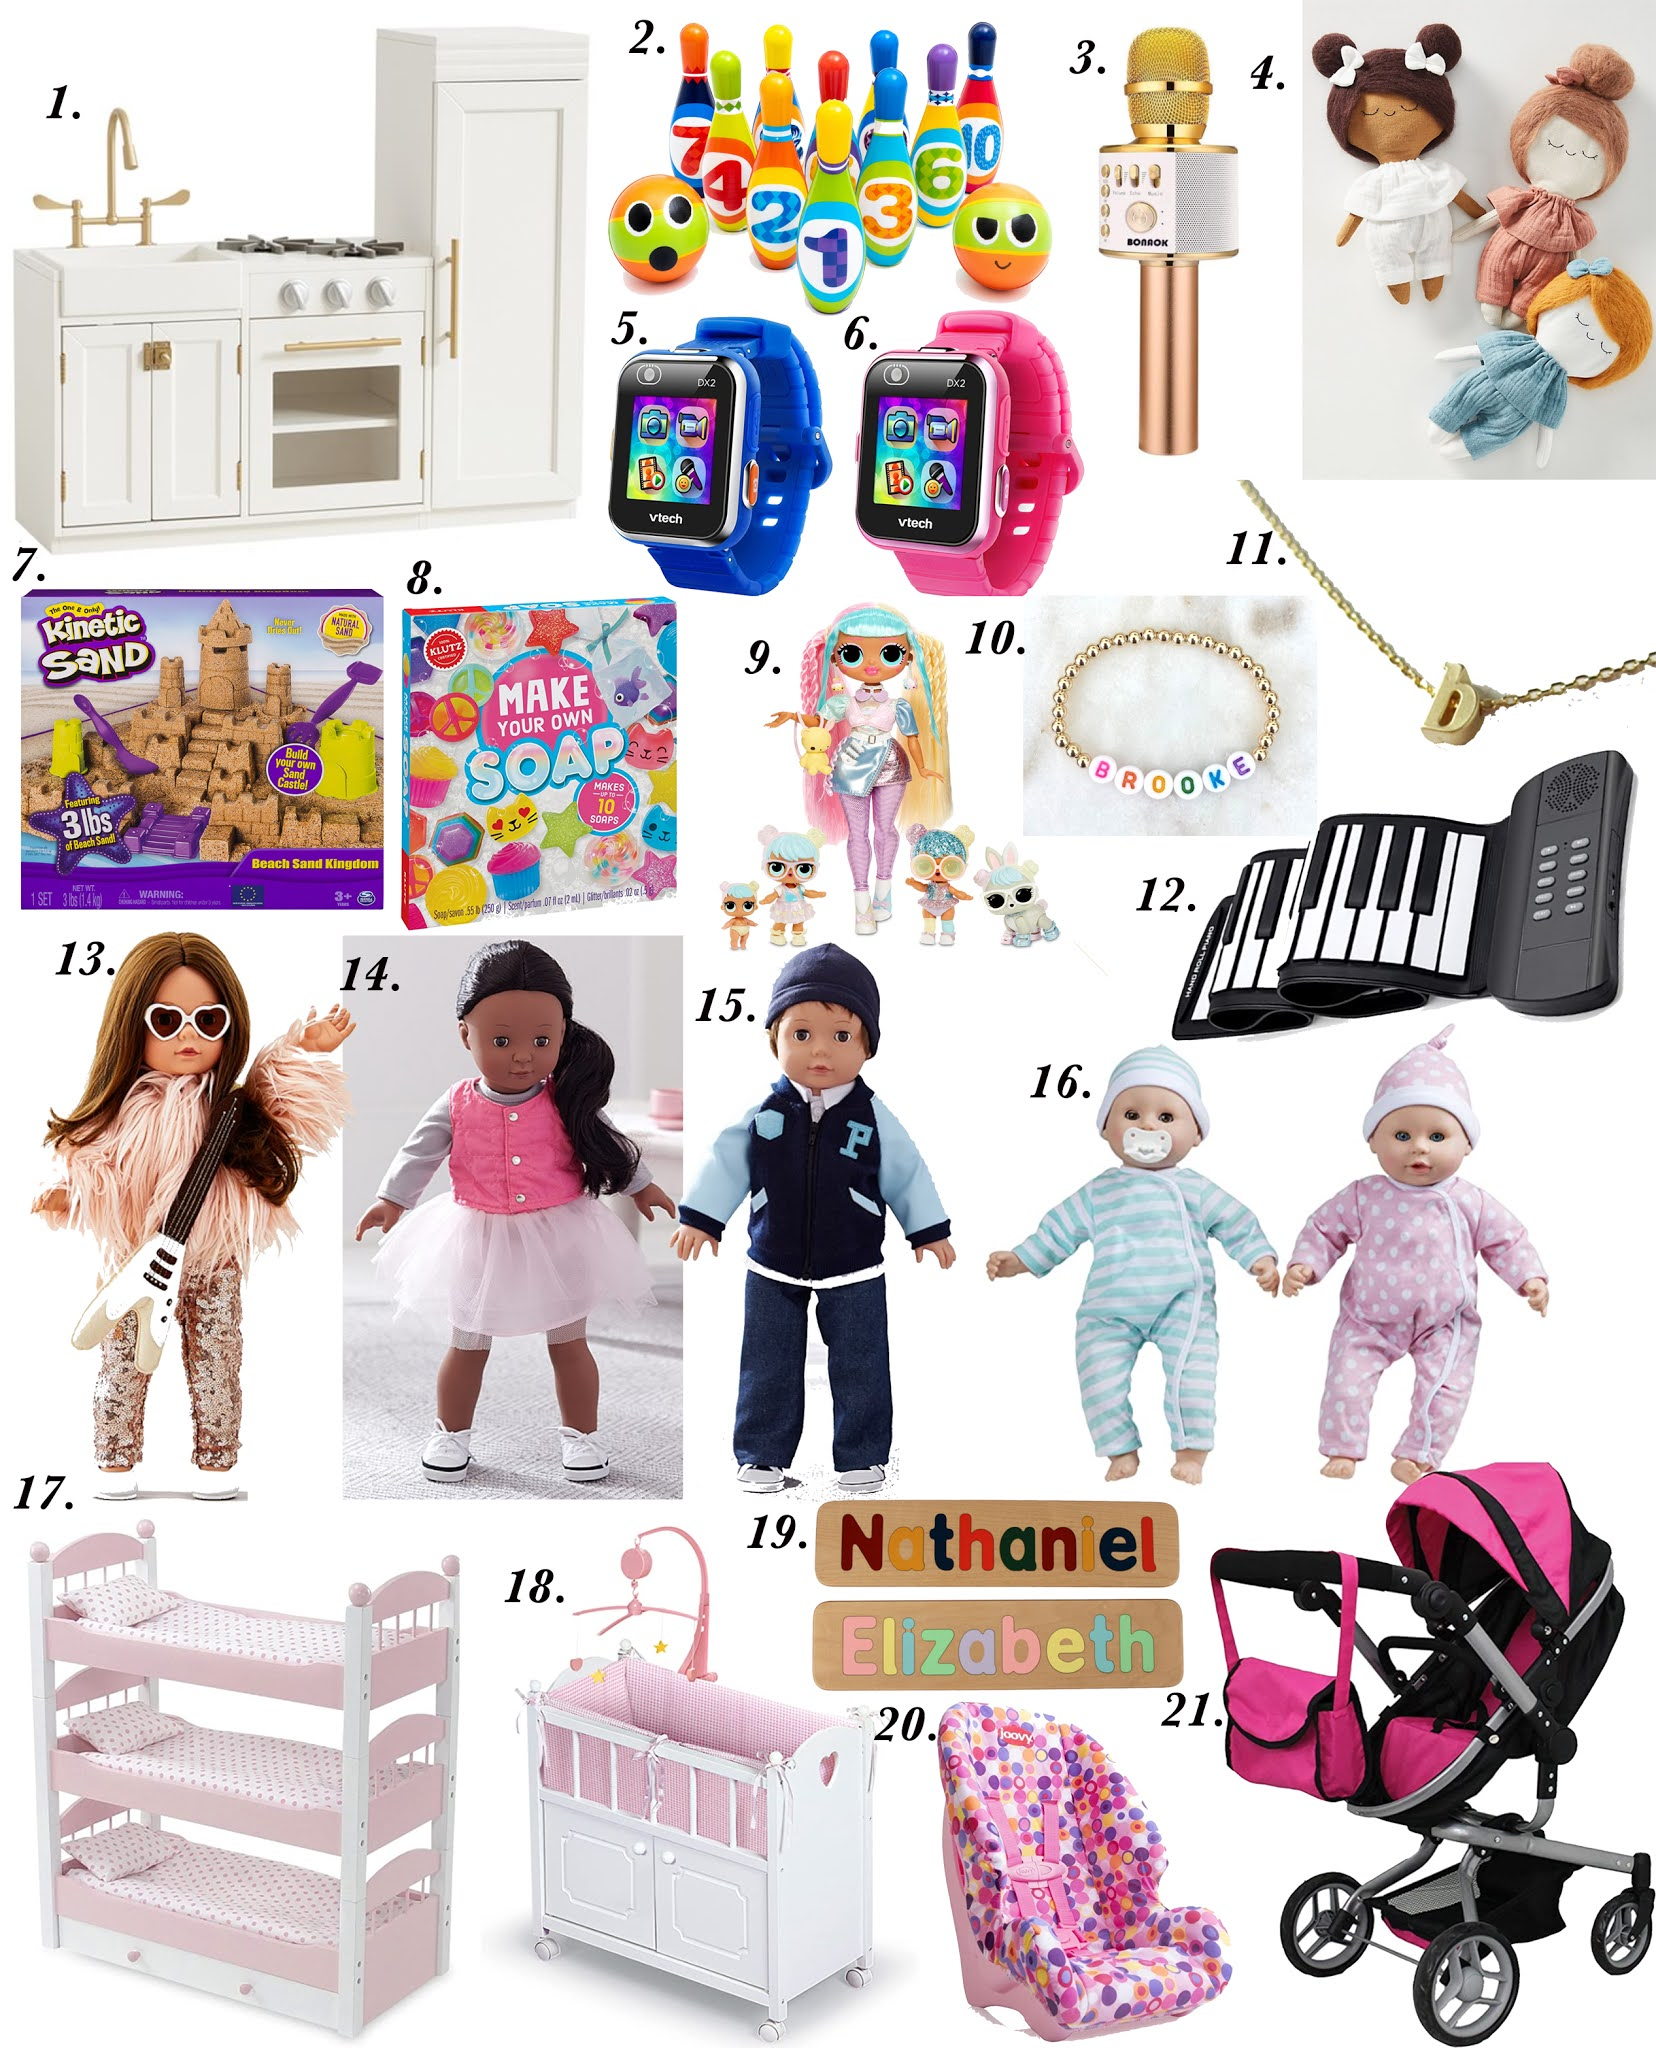 Gifts For Kids 2020 - Something Delightful Blog #GiftIdeas #GiftsForKids #KidsGiftIdeas #GiftIdeas2020